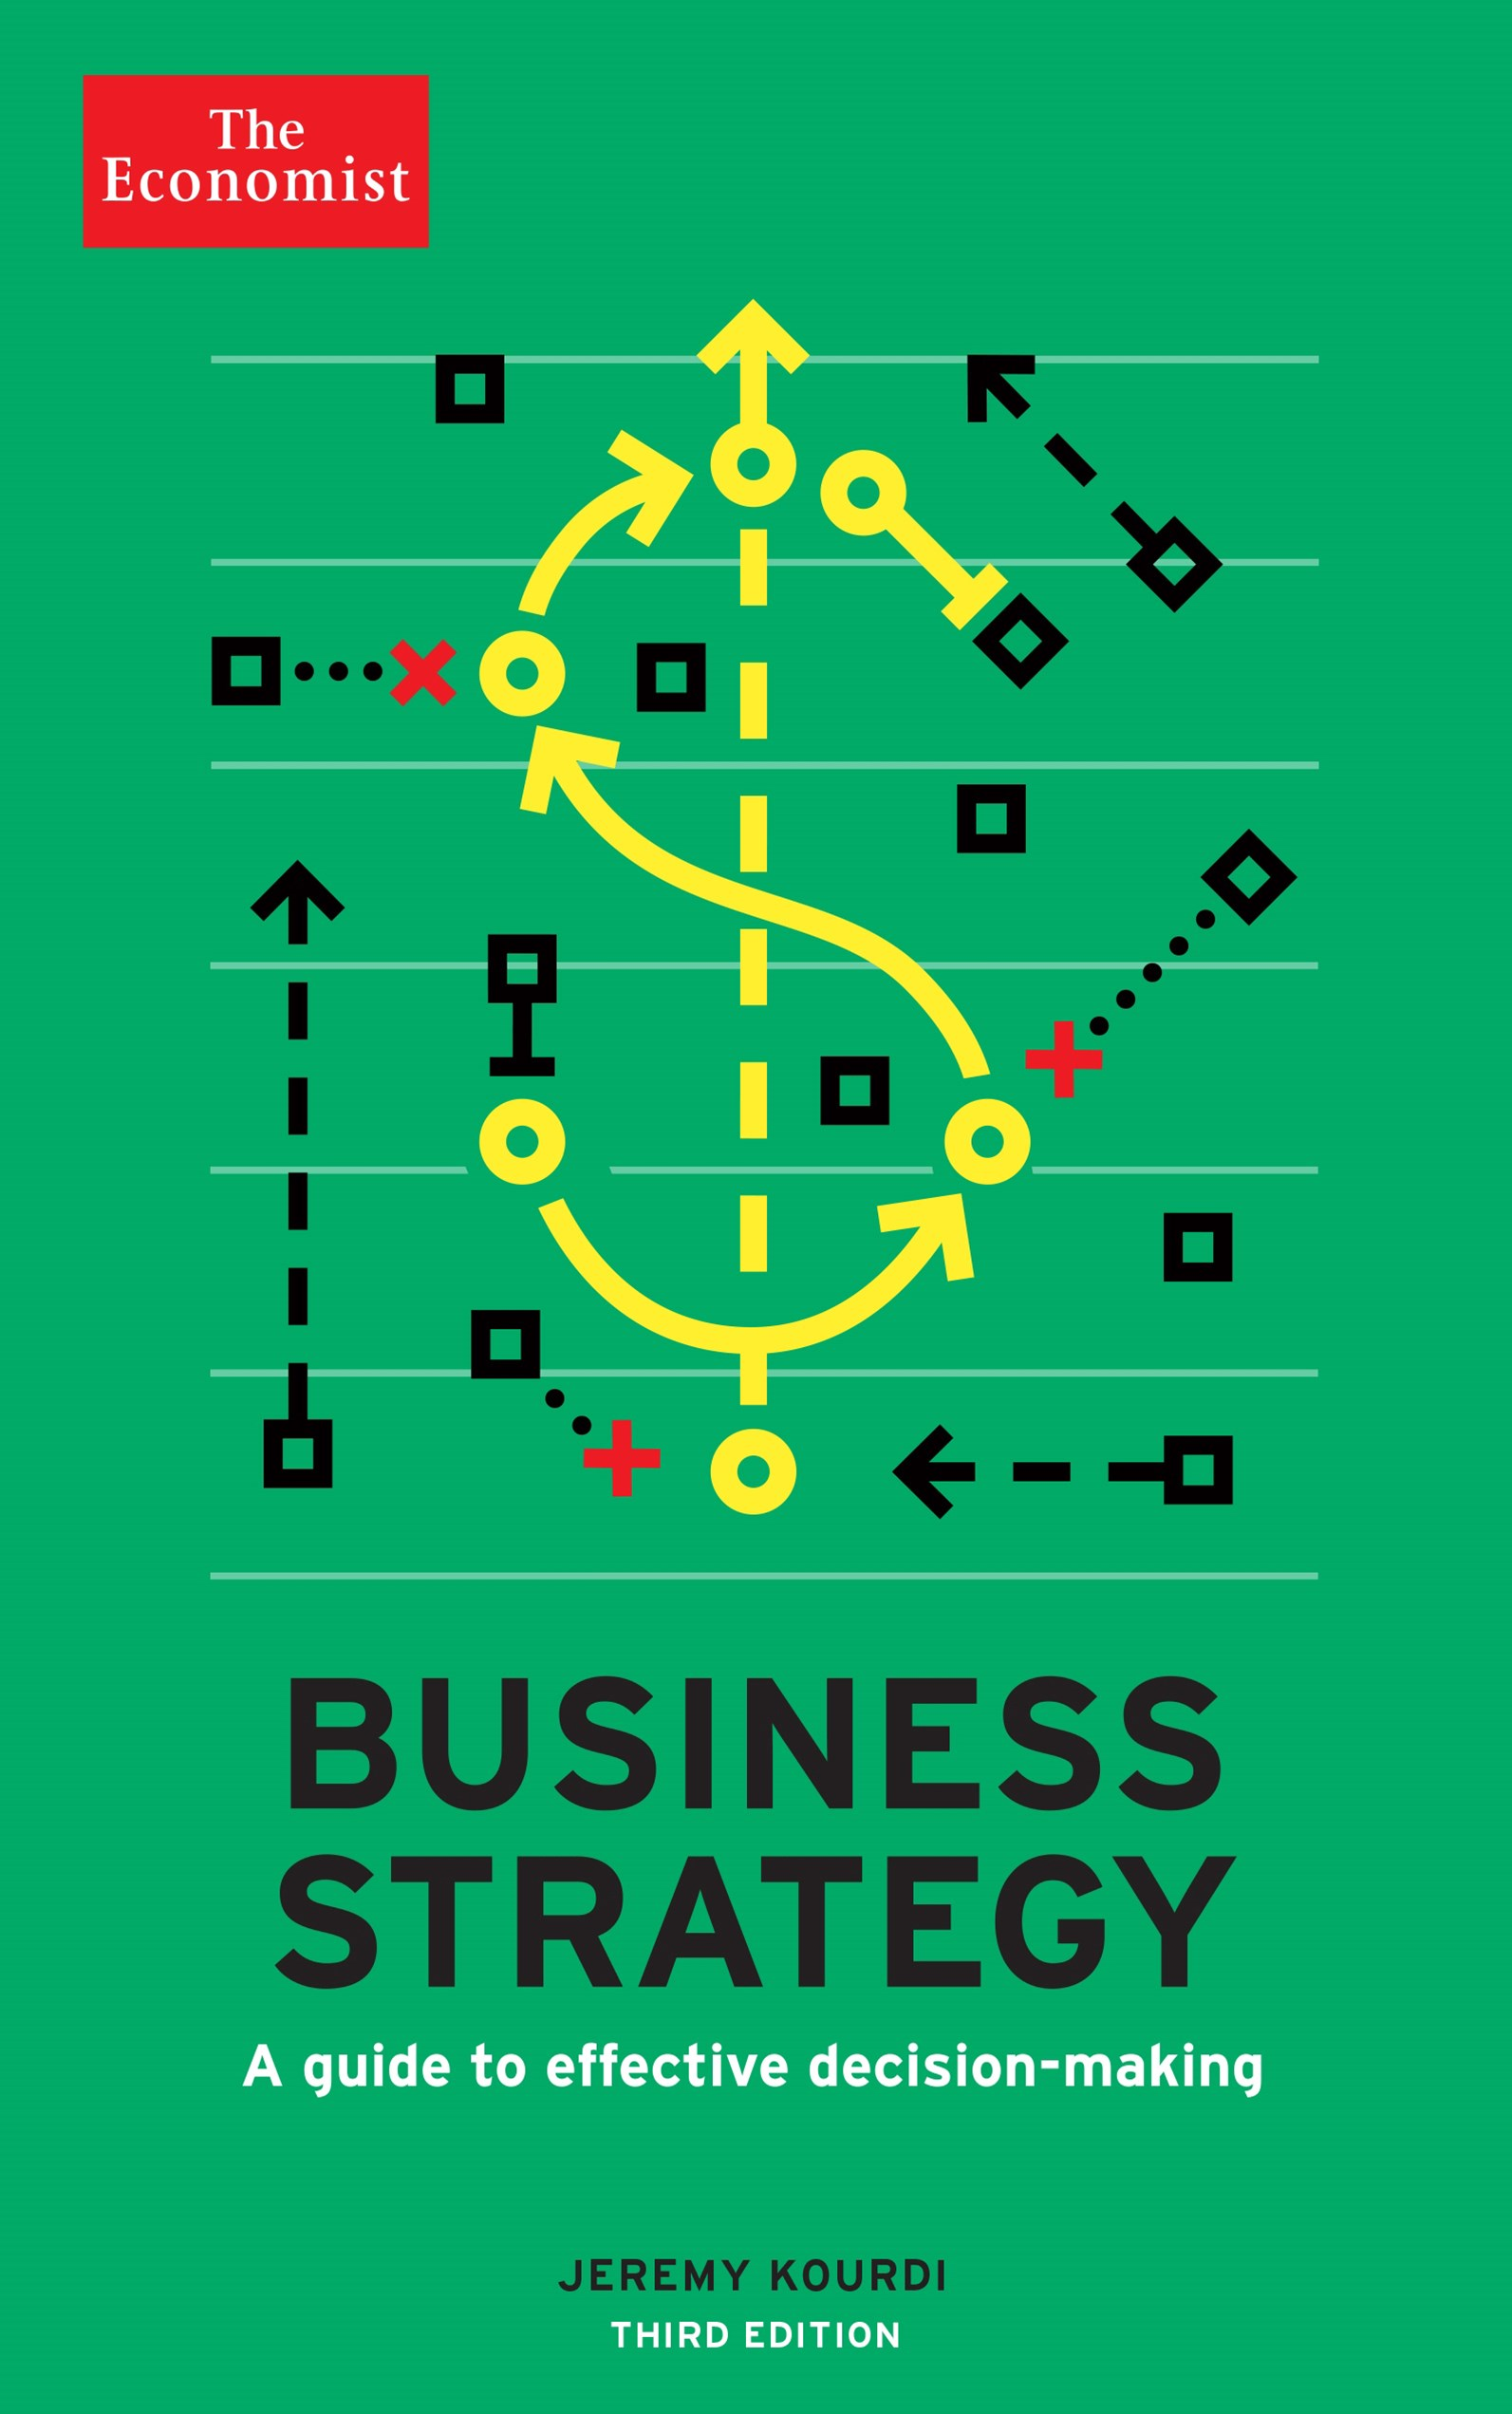 The Economist: Business Strategy 3rd edition